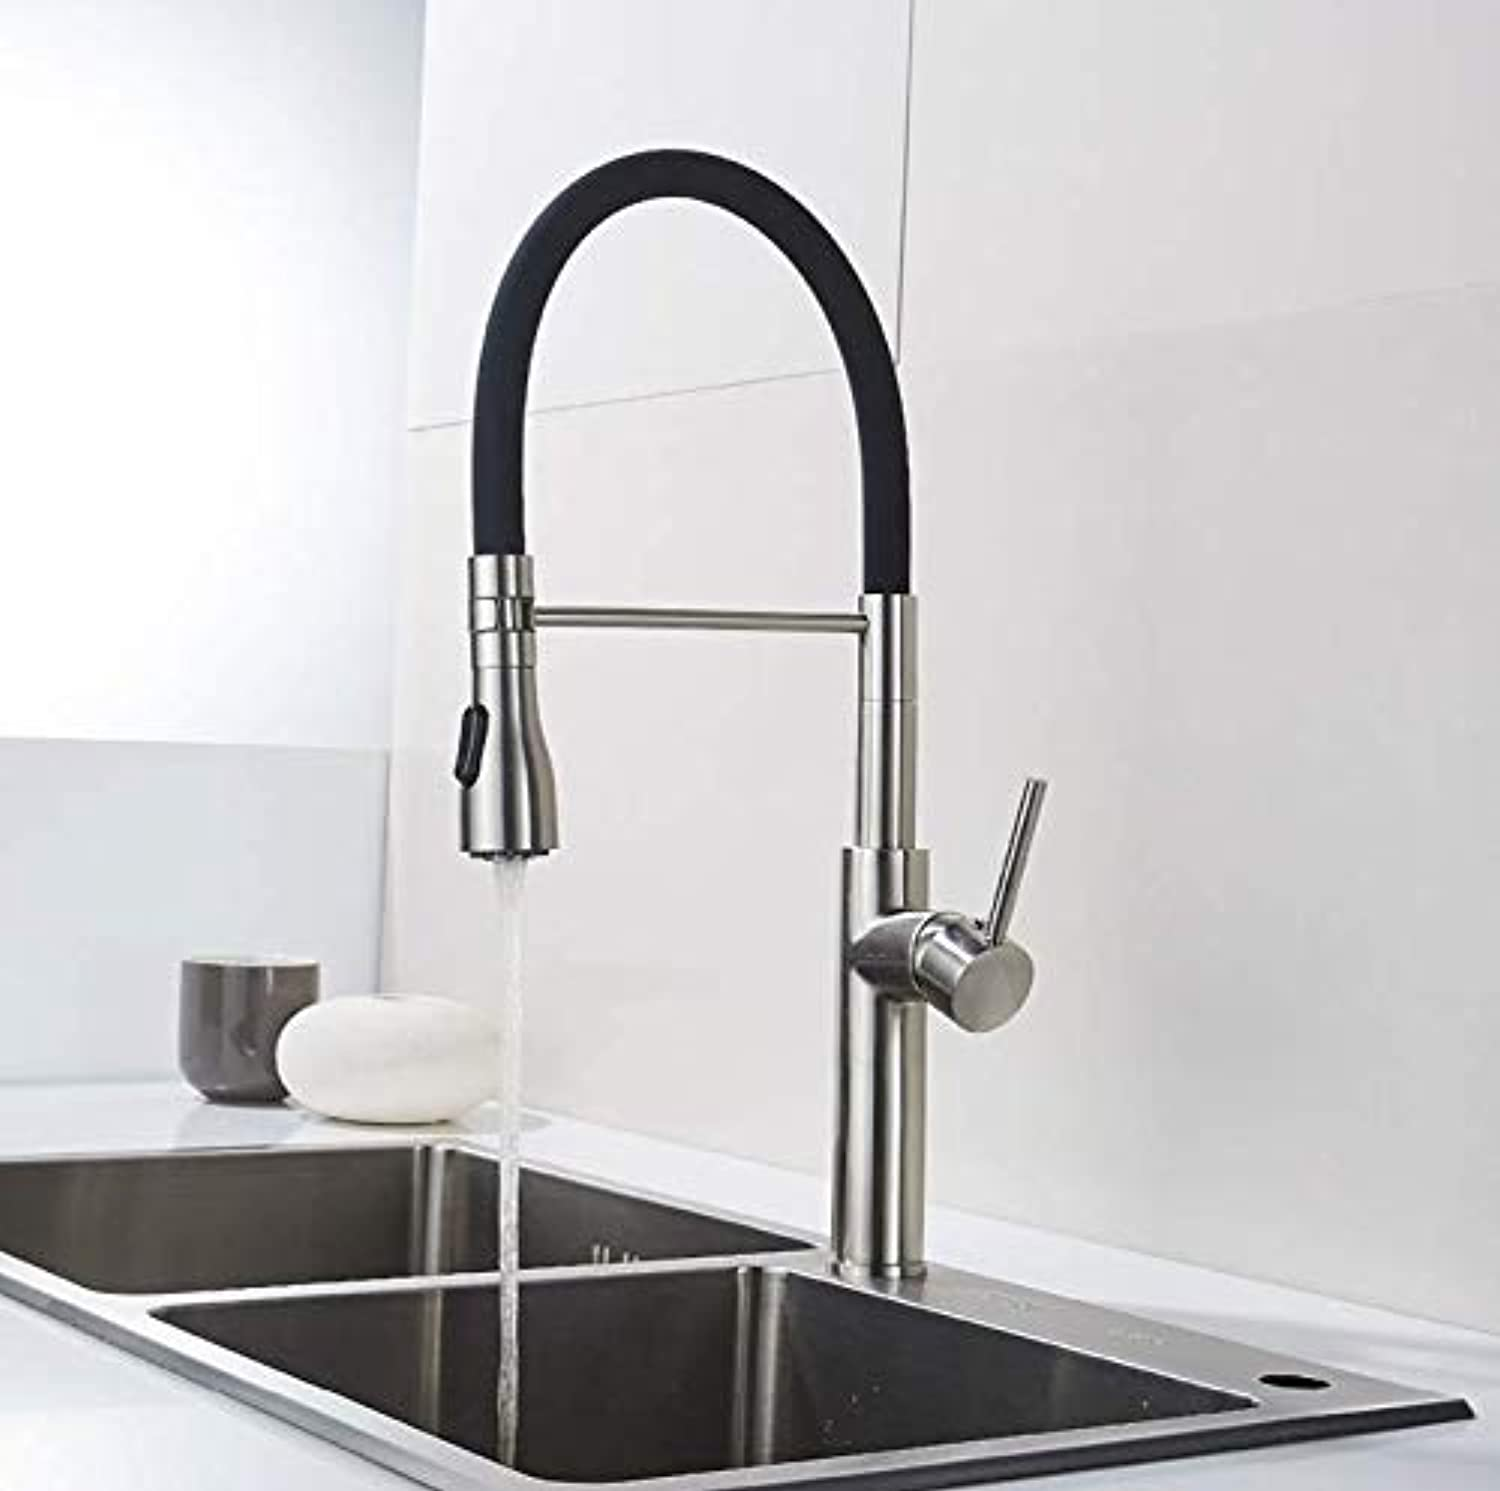 Decorry Unique Design Kitchen Faucet Brass Kitchen Faucets Turning 360 Degrees Black Kitchen Sink Torneira Parede Rubinetti 301-33N